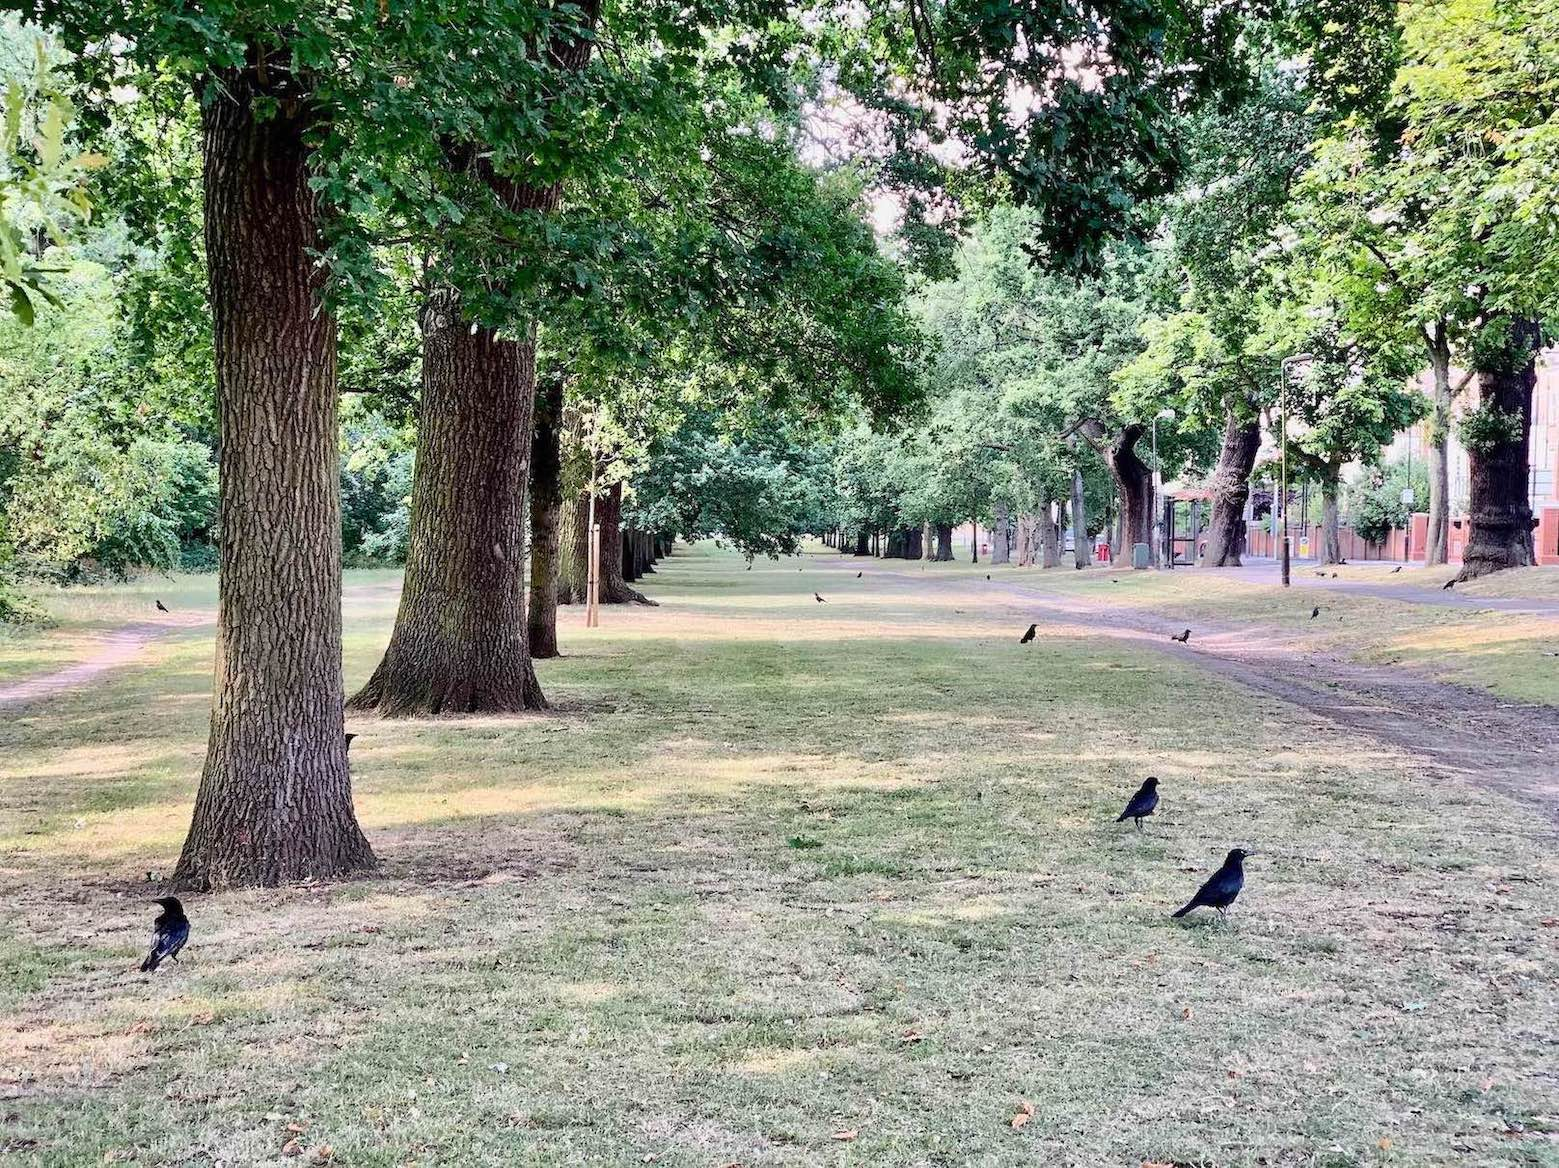 Visit London Tooting Bec Common.